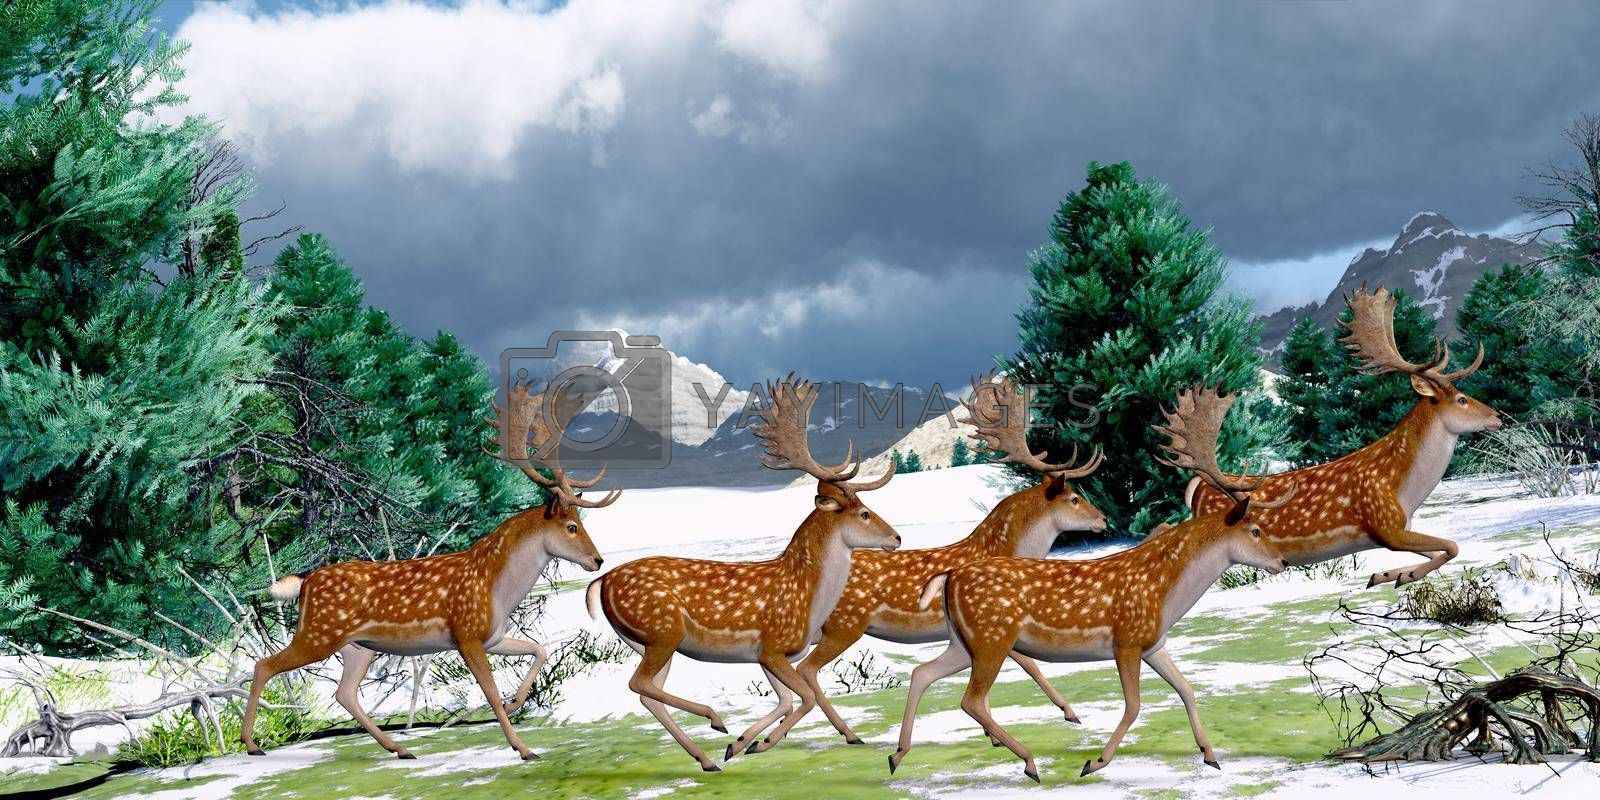 A herd of Fallow deer bucks run together in an evergreen forest in Europe during the Pleistocene Period.